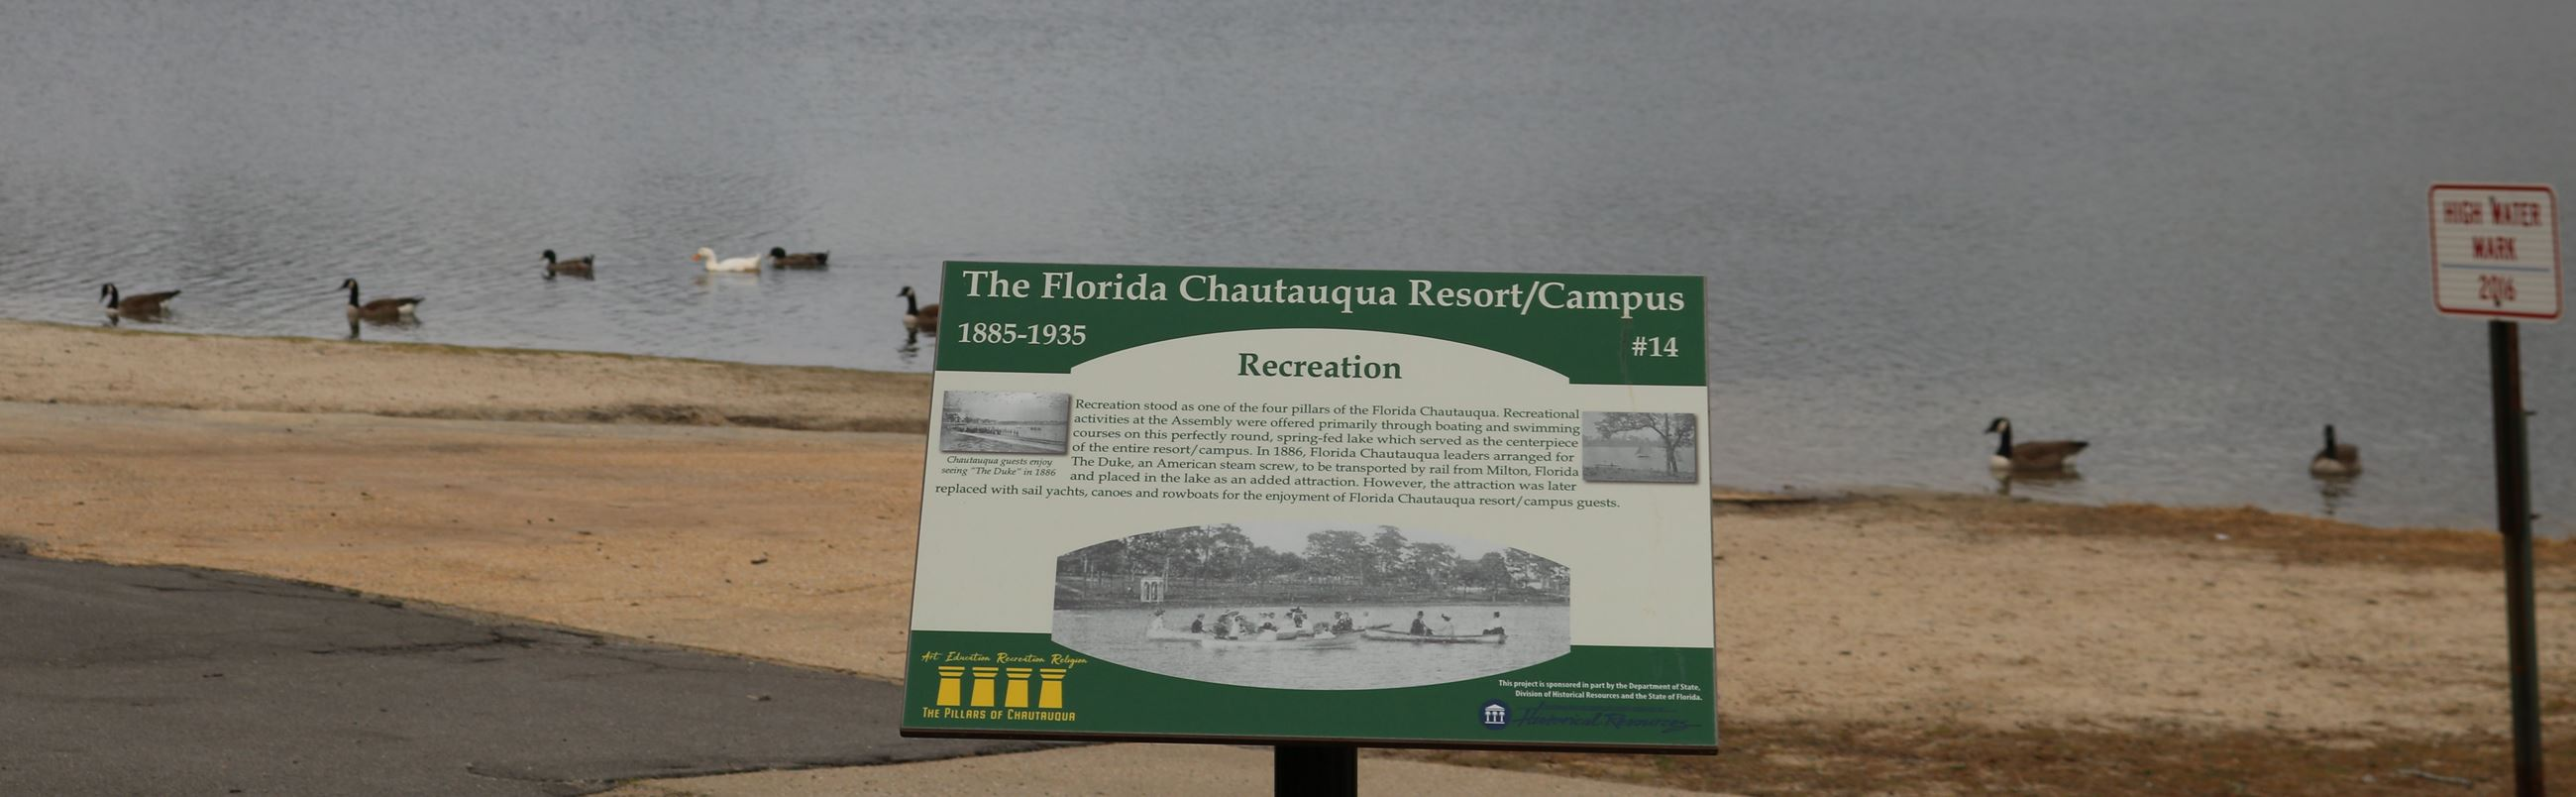 information sign next to a body of water